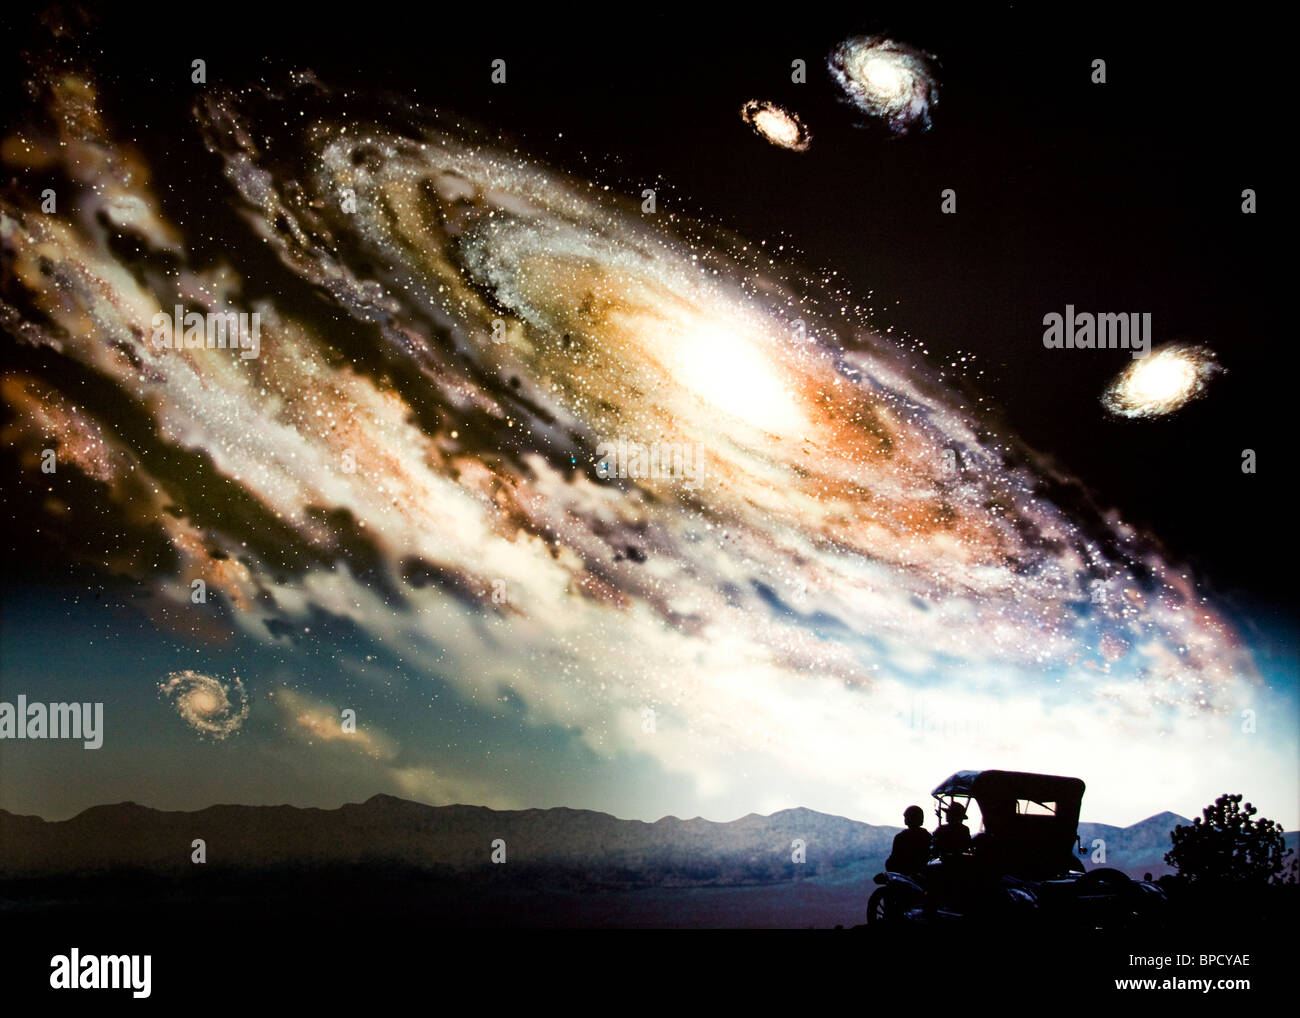 Illustration of a spiral galaxy - Stock Image